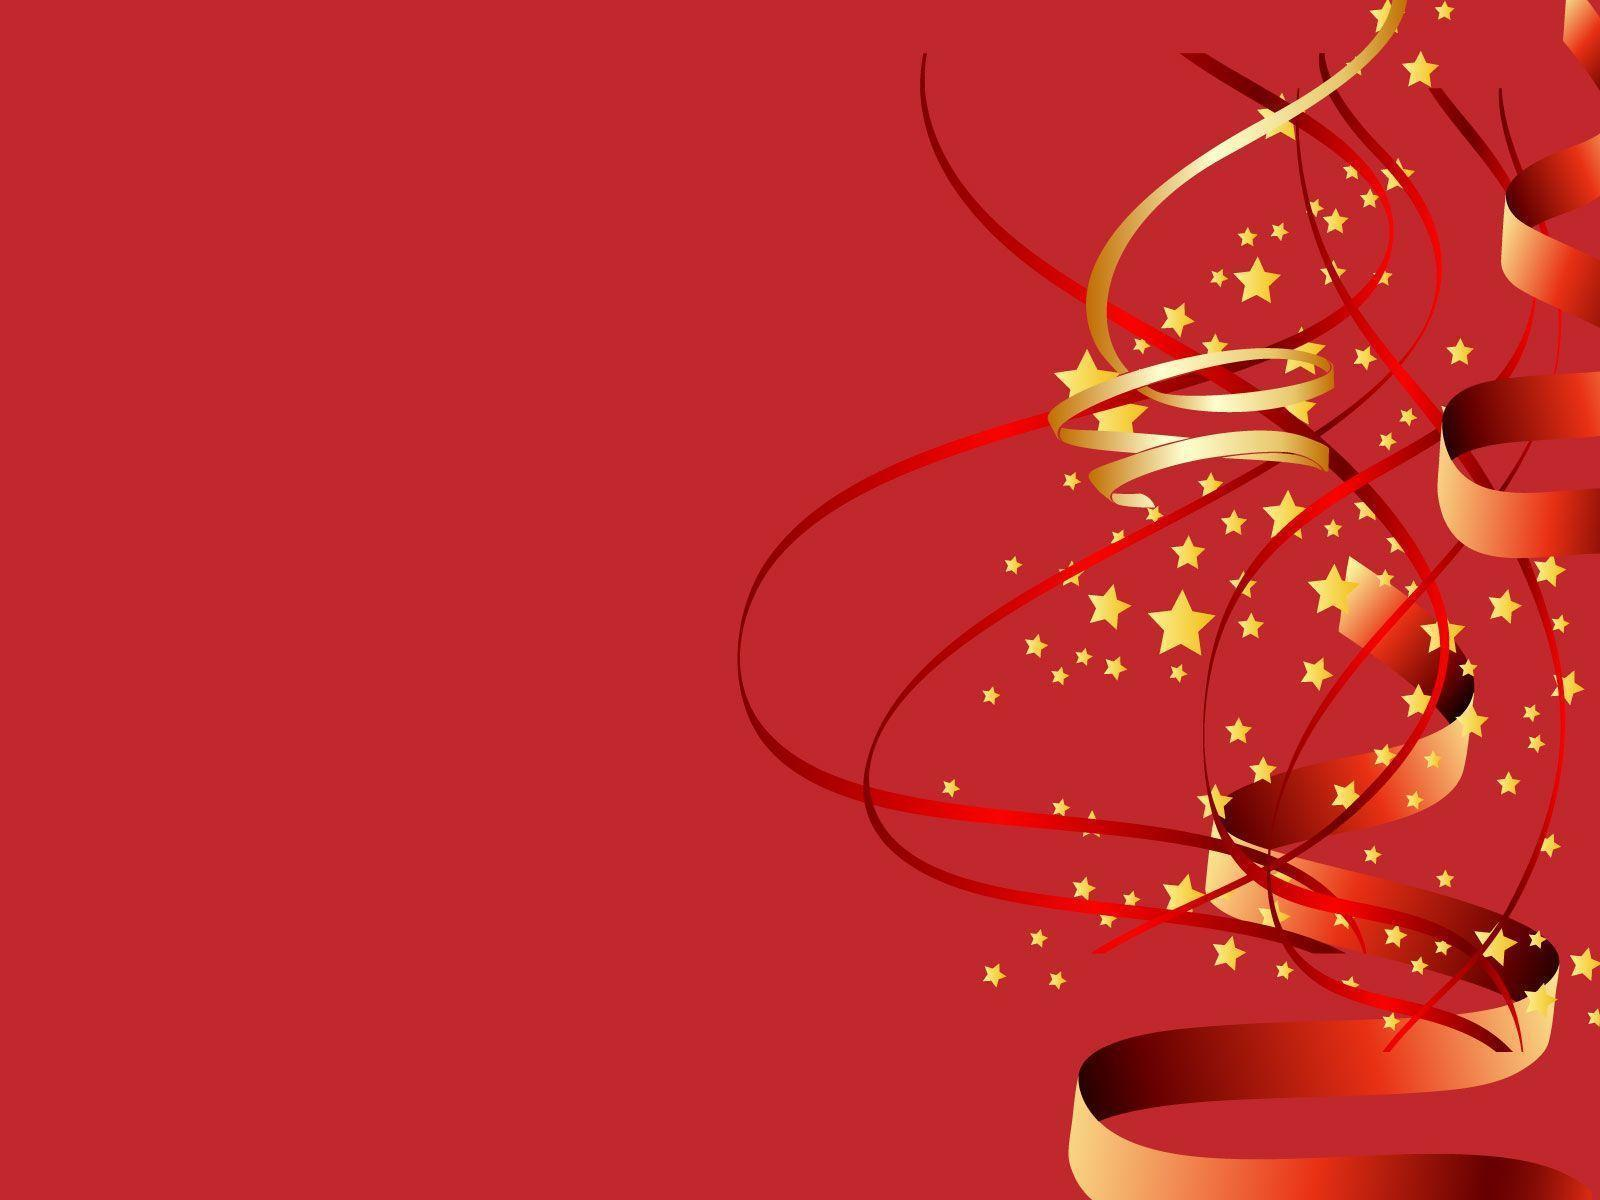 happy new year background free internet pictures